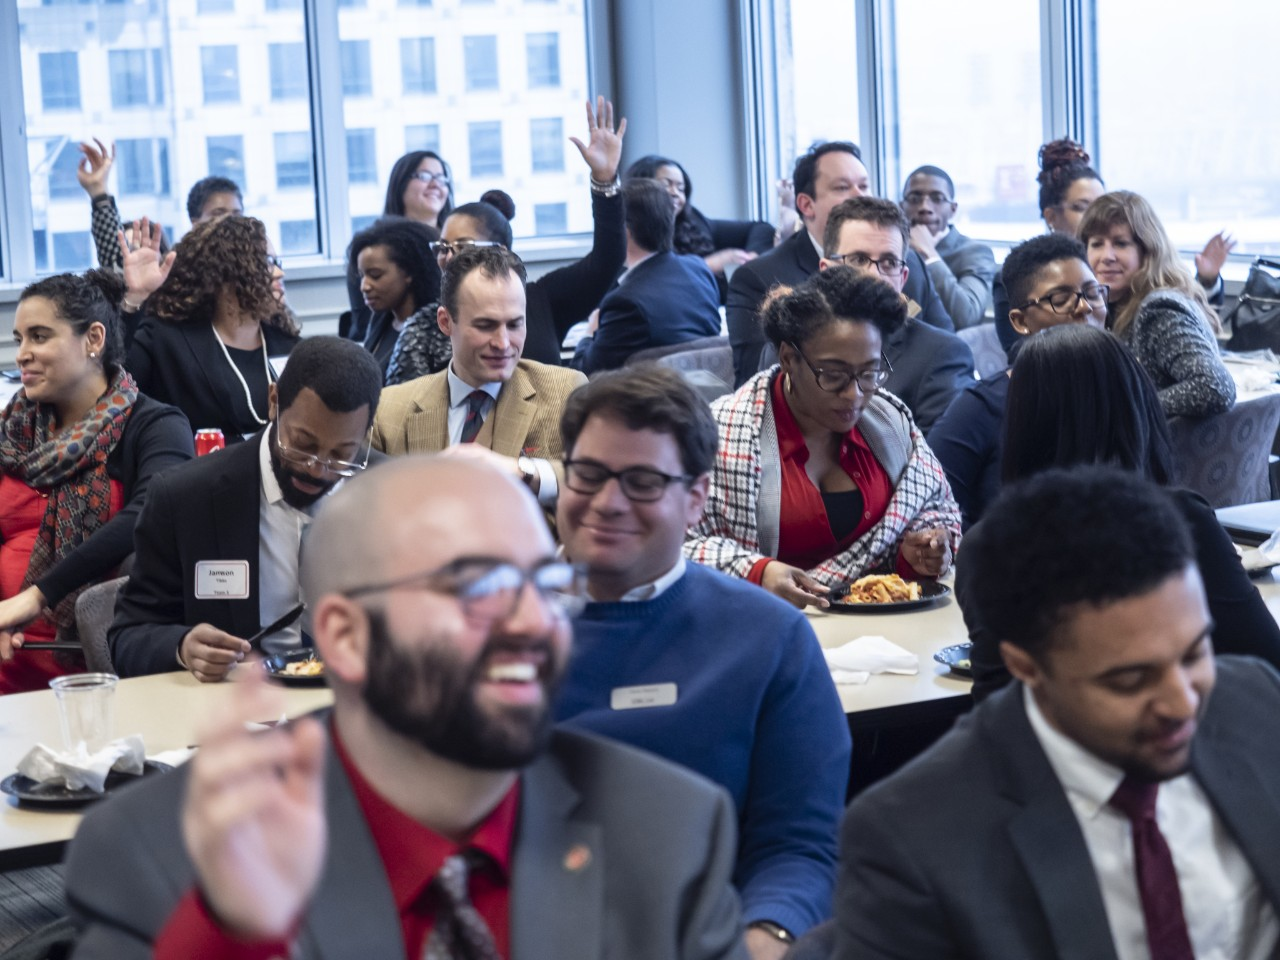 Diversity Case competition participants smiling.